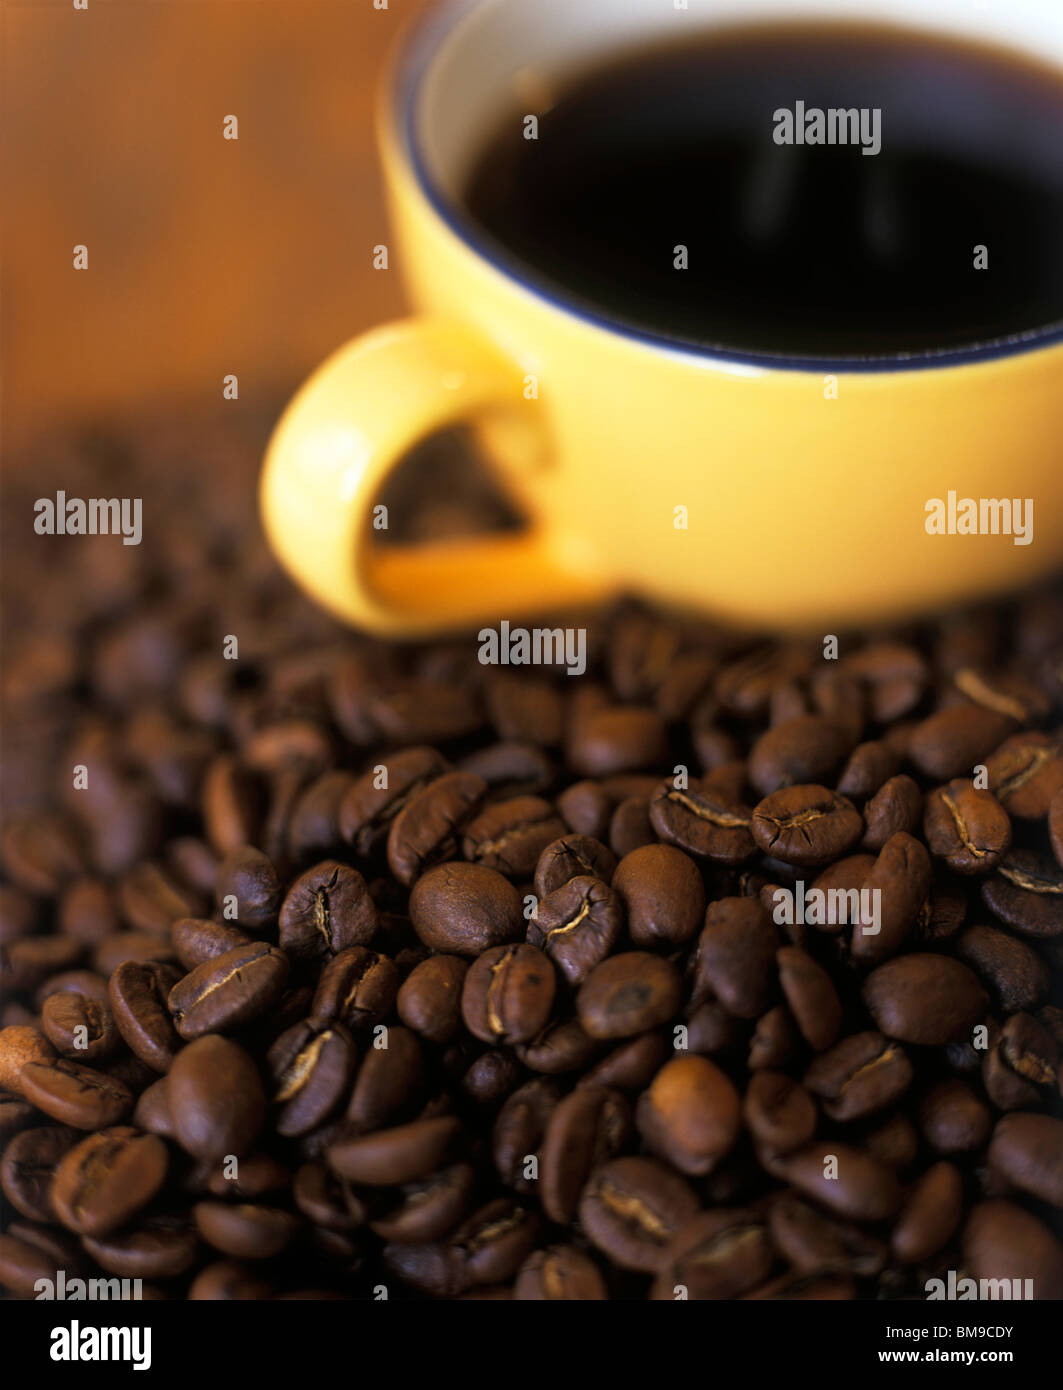 Coffee Cup in mound of coffee beans - Stock Image